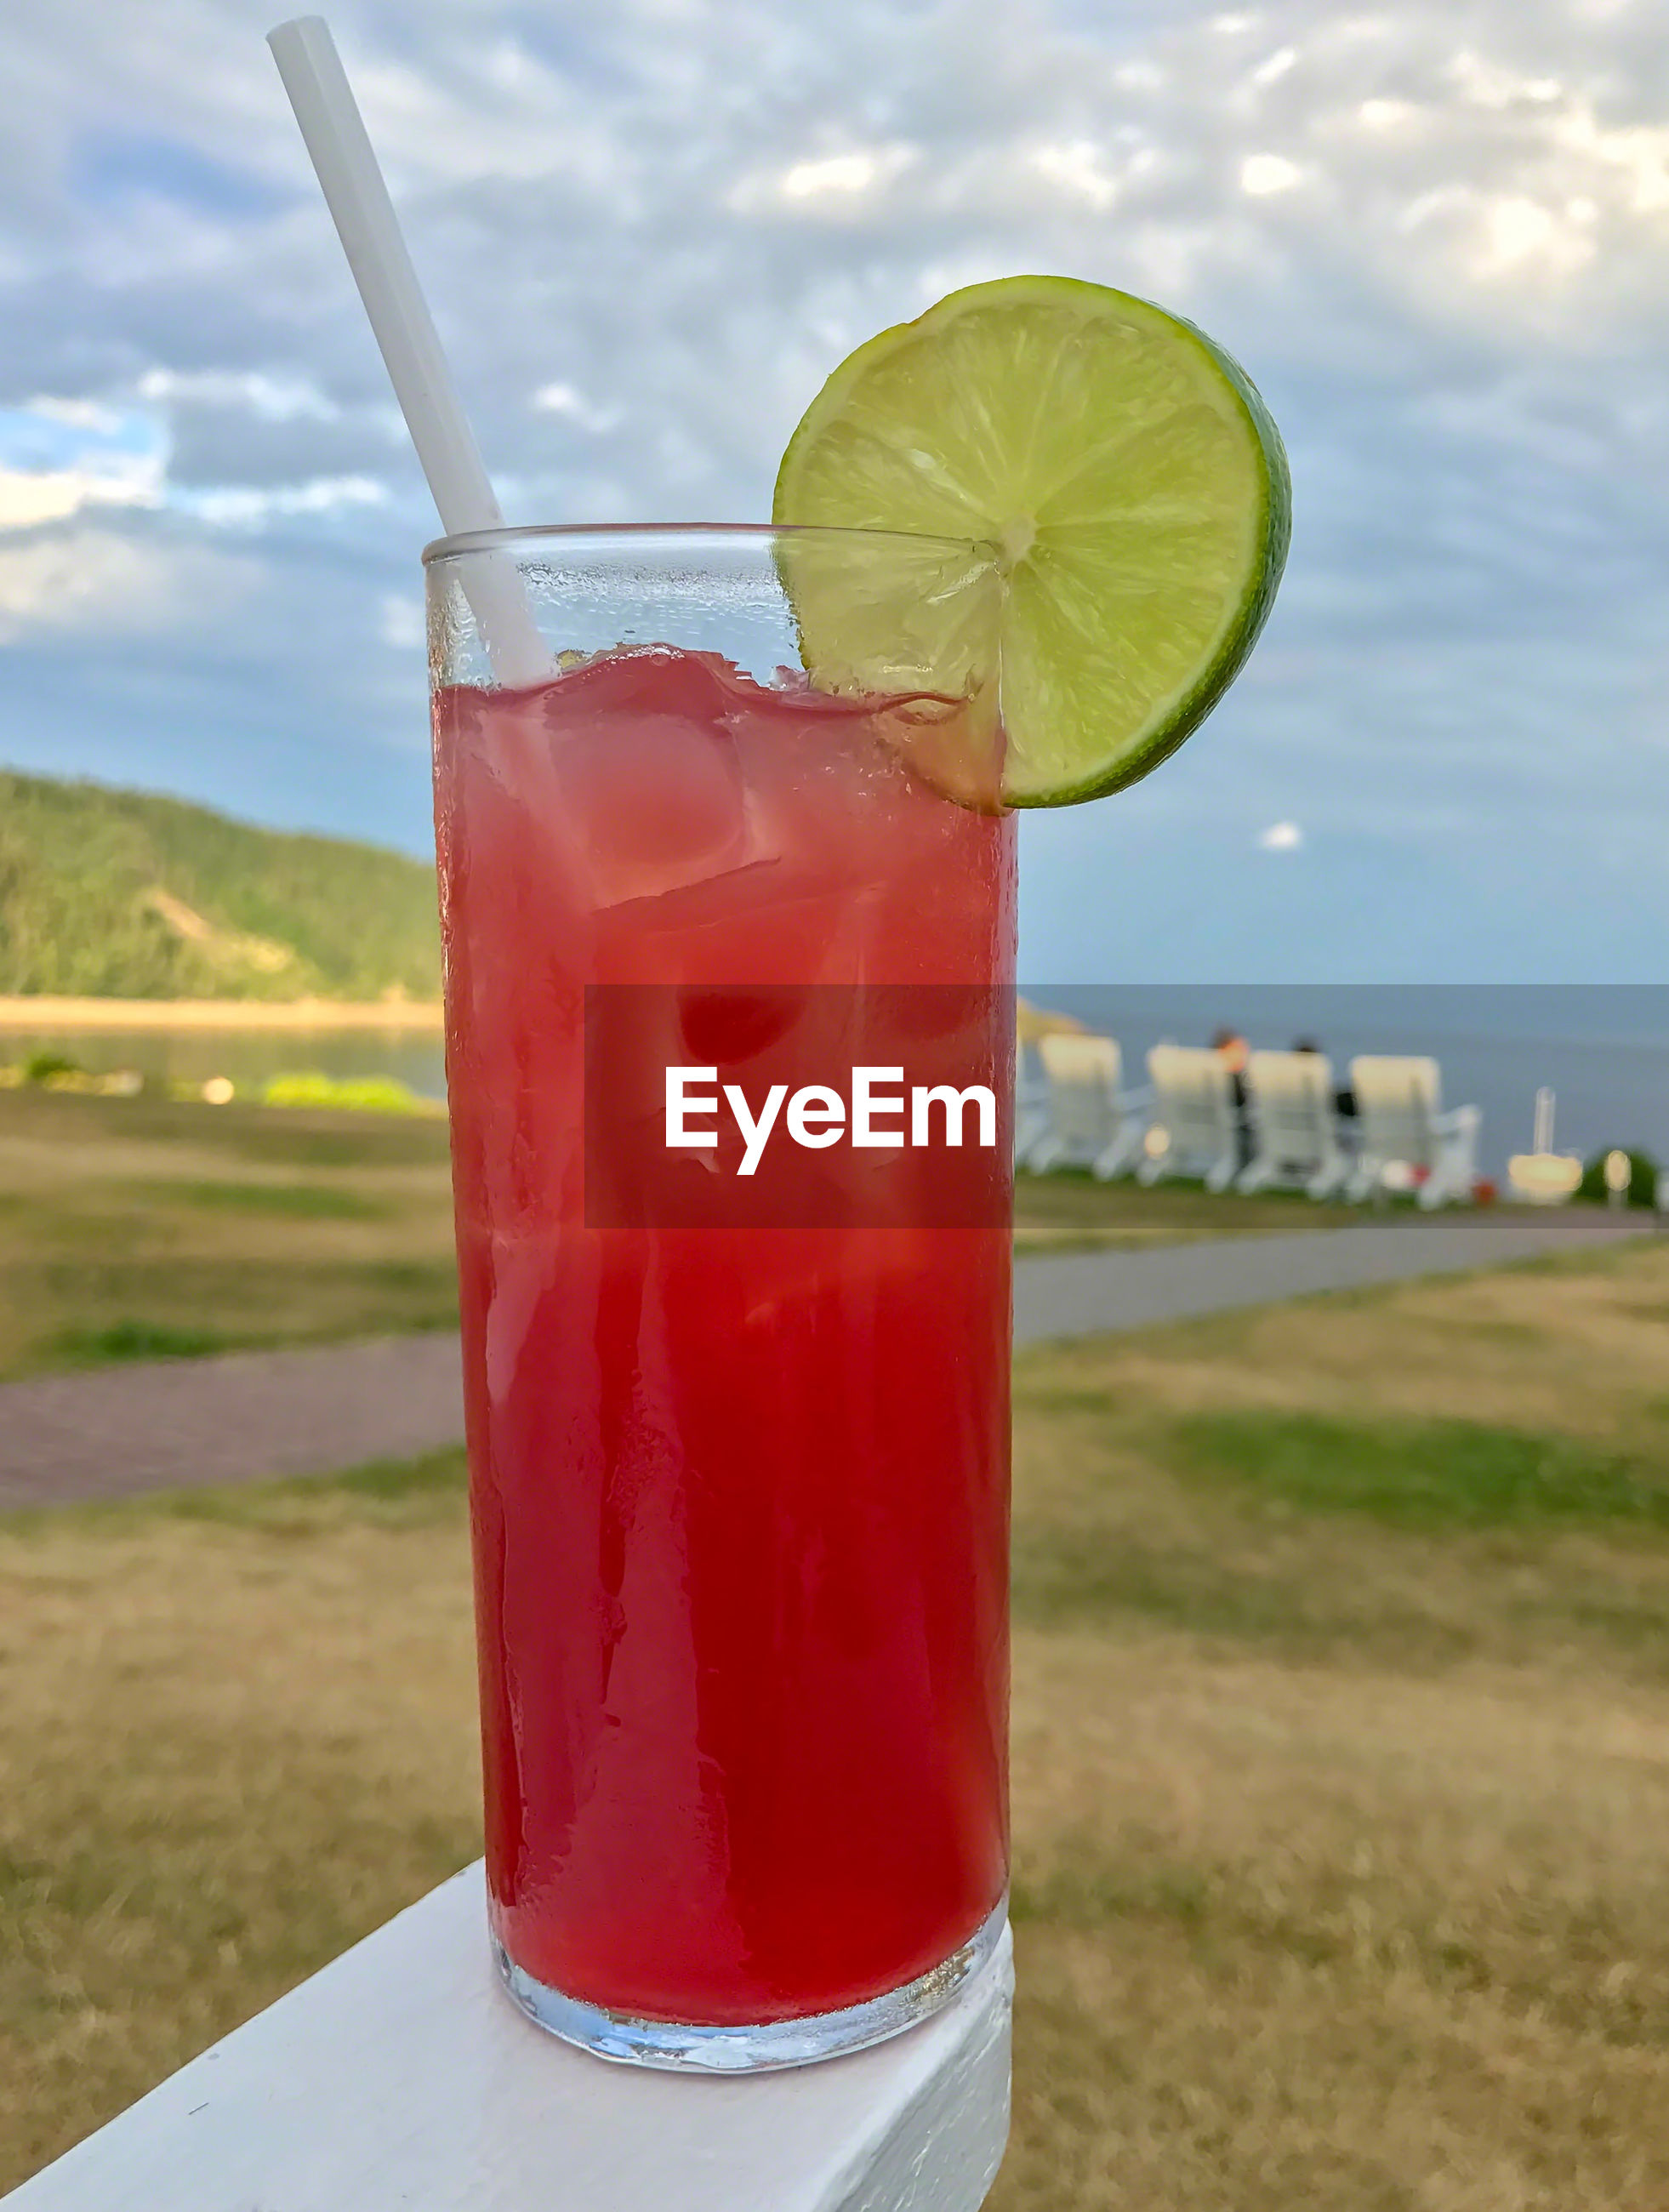 CLOSE-UP OF DRINK ON RED AGAINST SKY